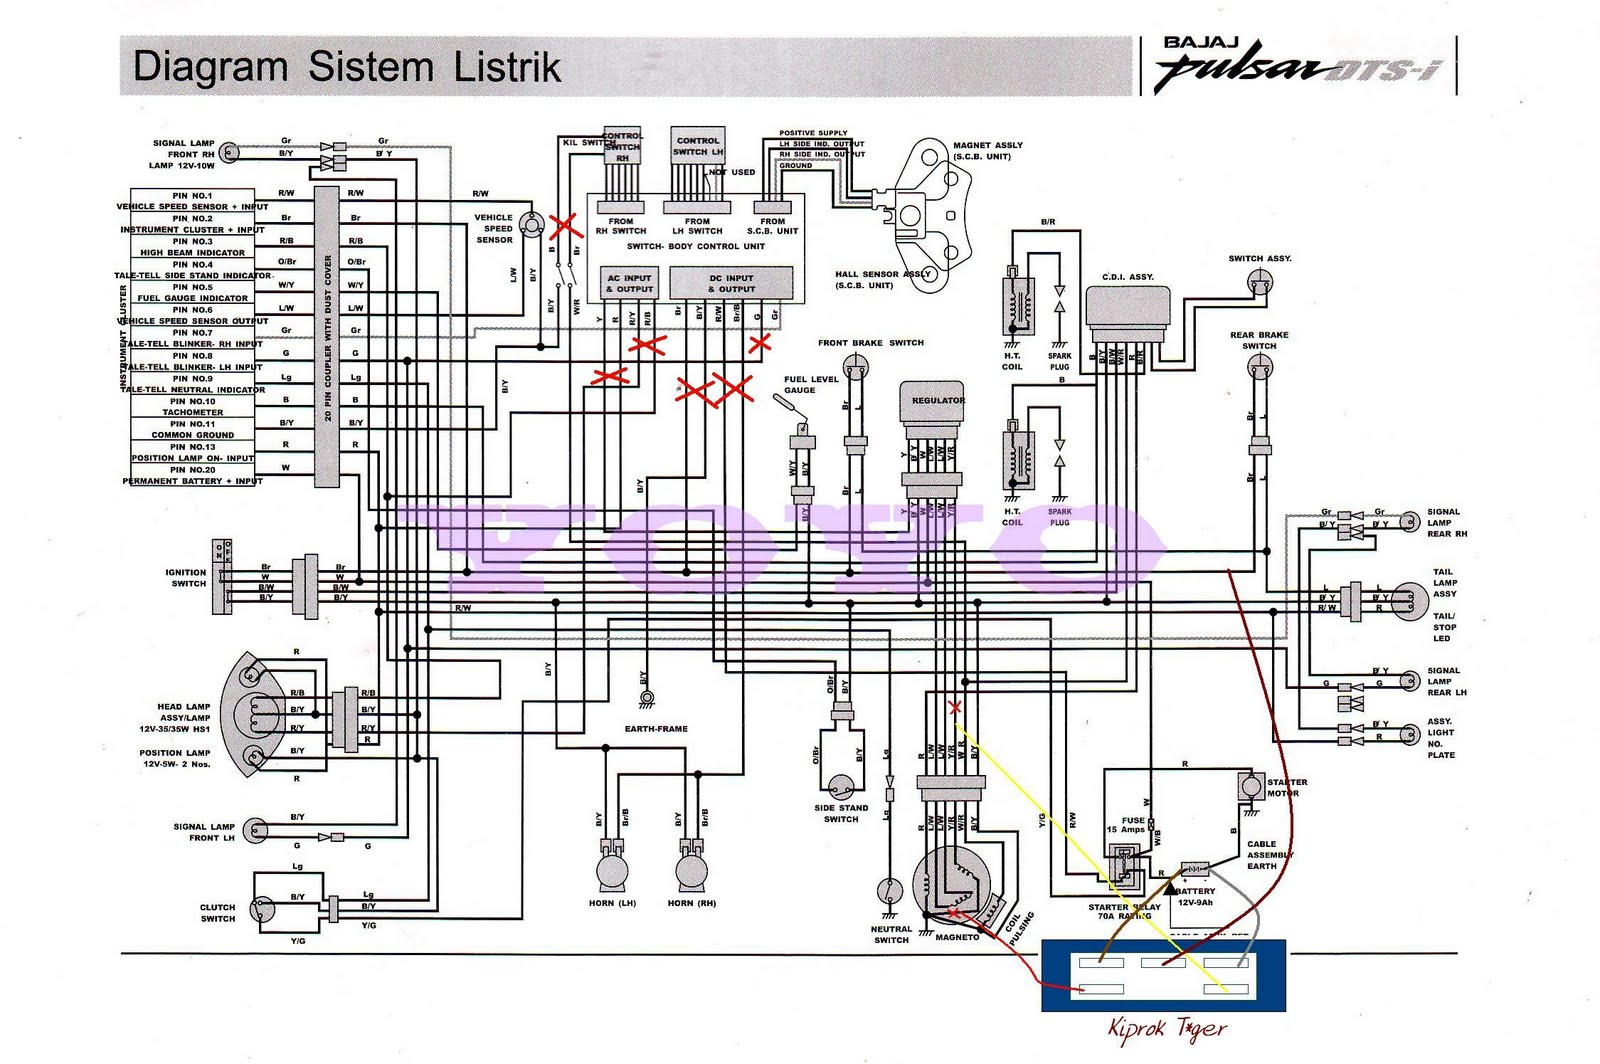 Yo2 Diy Full Wave Bajaj Pulsar 180 Schematic Circuit Diagram Bajaj Wiring  Diagram